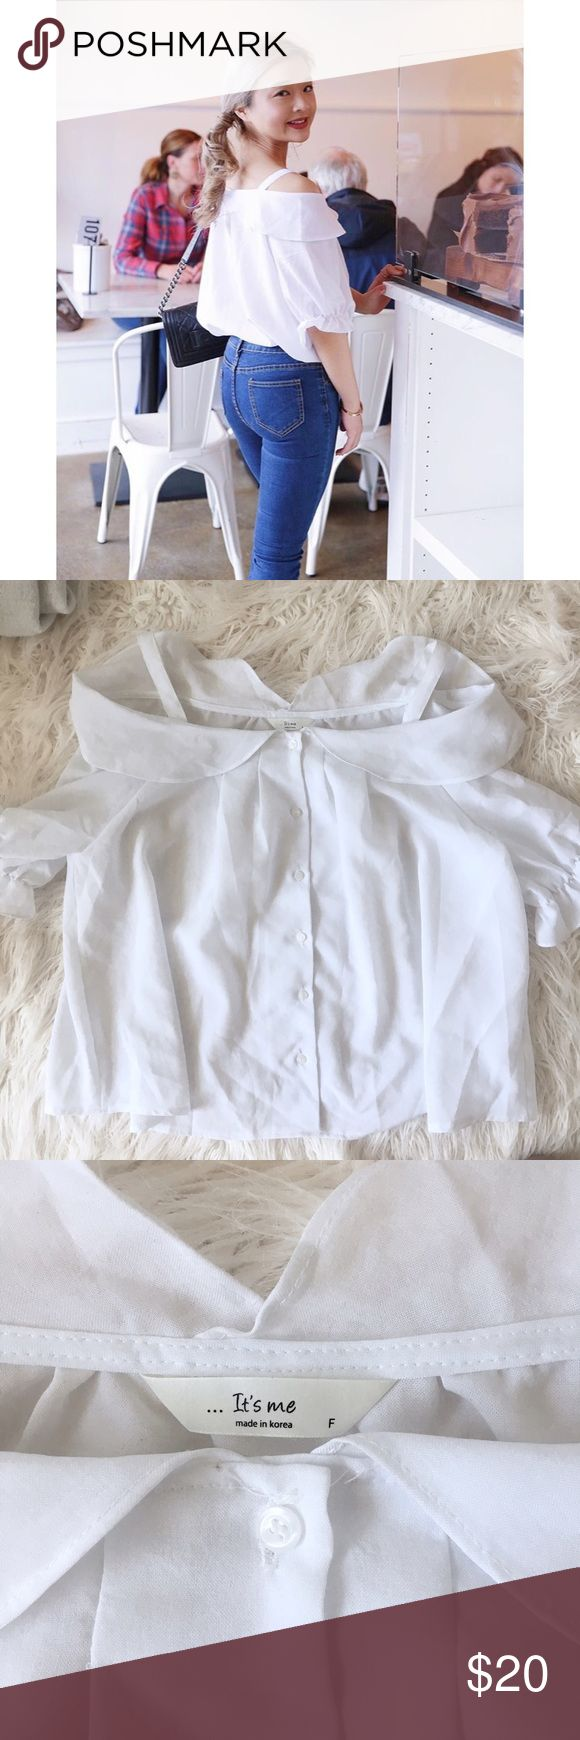 Korean CHUU Strapped Off shoulder Blouse OS $50 Korean CHUU OFFICIAL Strapped Off shoulder Blouse  Condition: Like new, worn once only Color:White Size: Free size, would fit XS-S Retail Price US$50  Listed under Nasty Gal just for more exposure (: Nasty Gal Tops Blouses